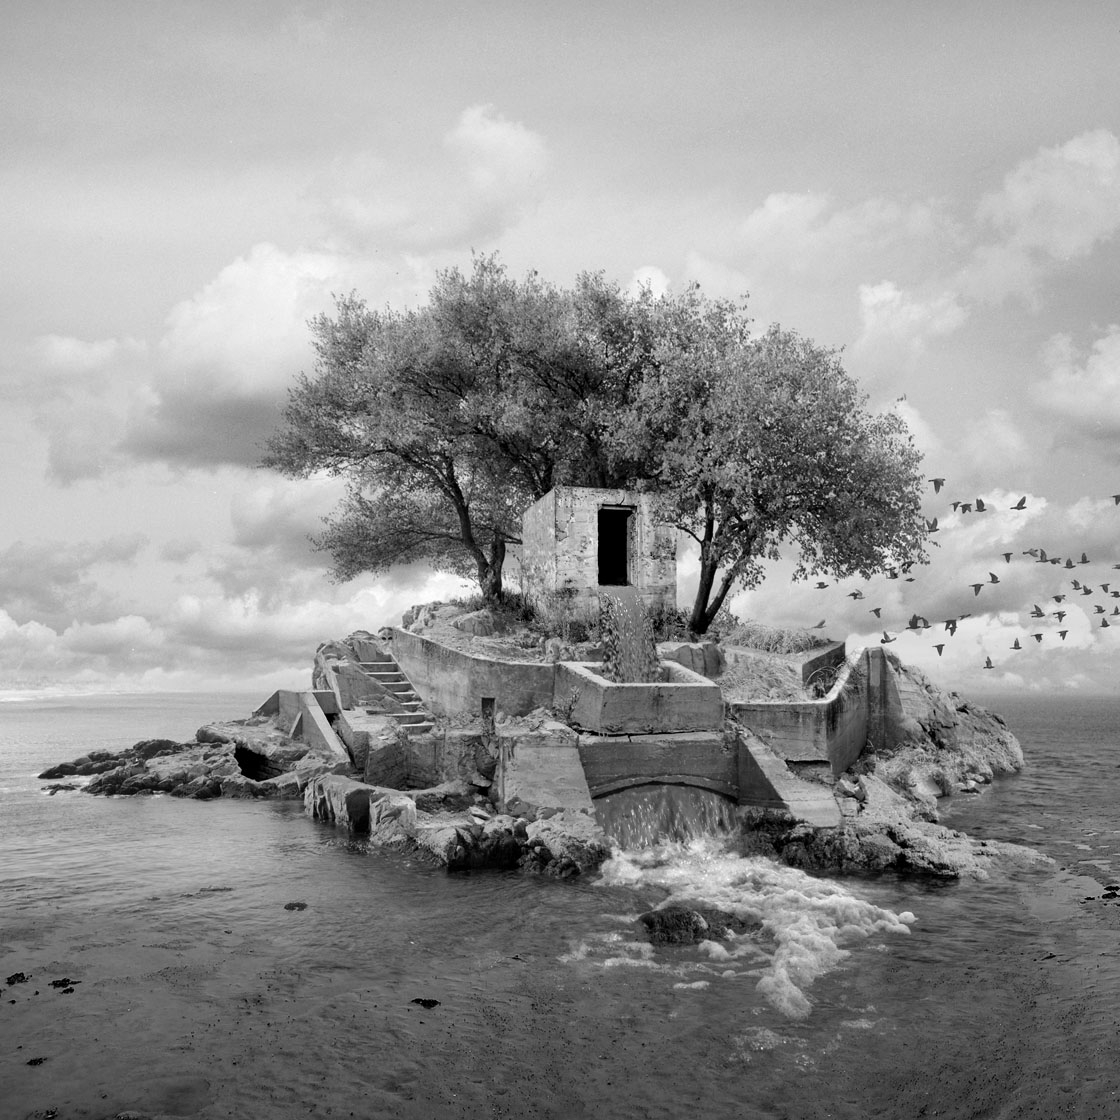 © Jim Kazanjian. Untitled (outpost). 2008